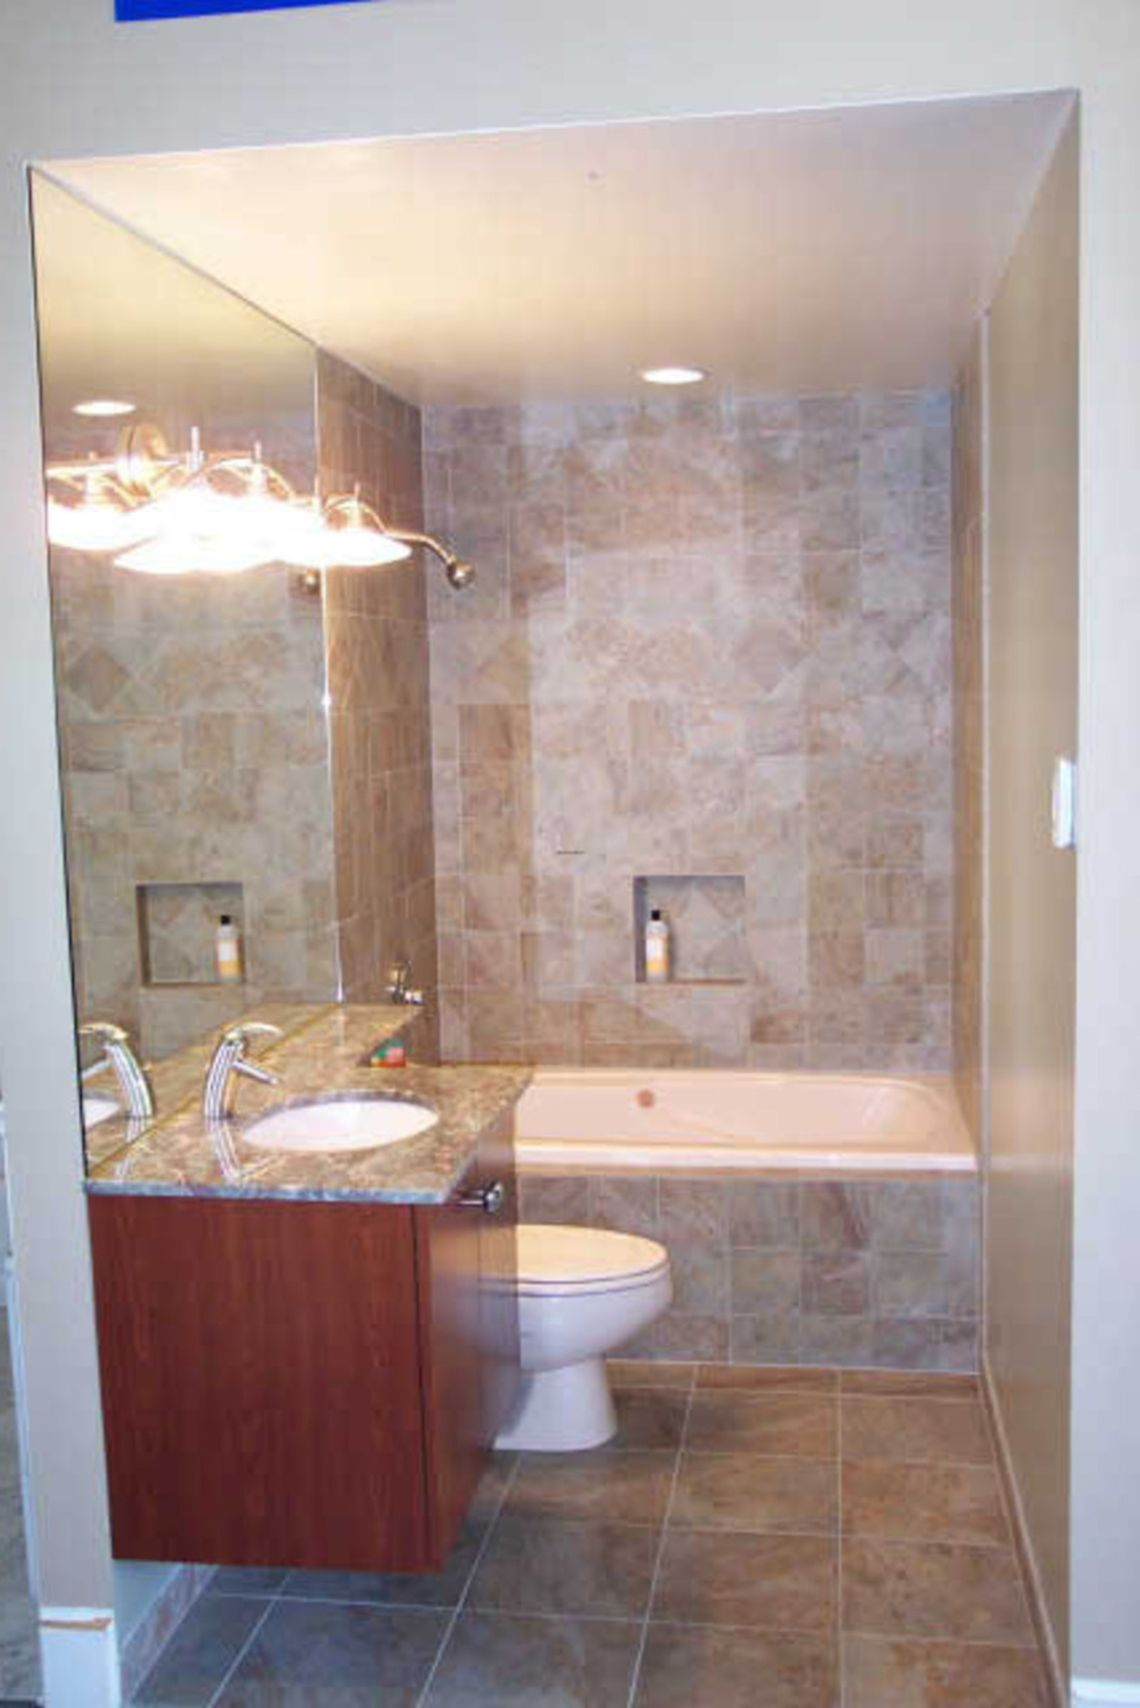 Excellent Bathroom Designs for Small Spaces Concept - Home ...